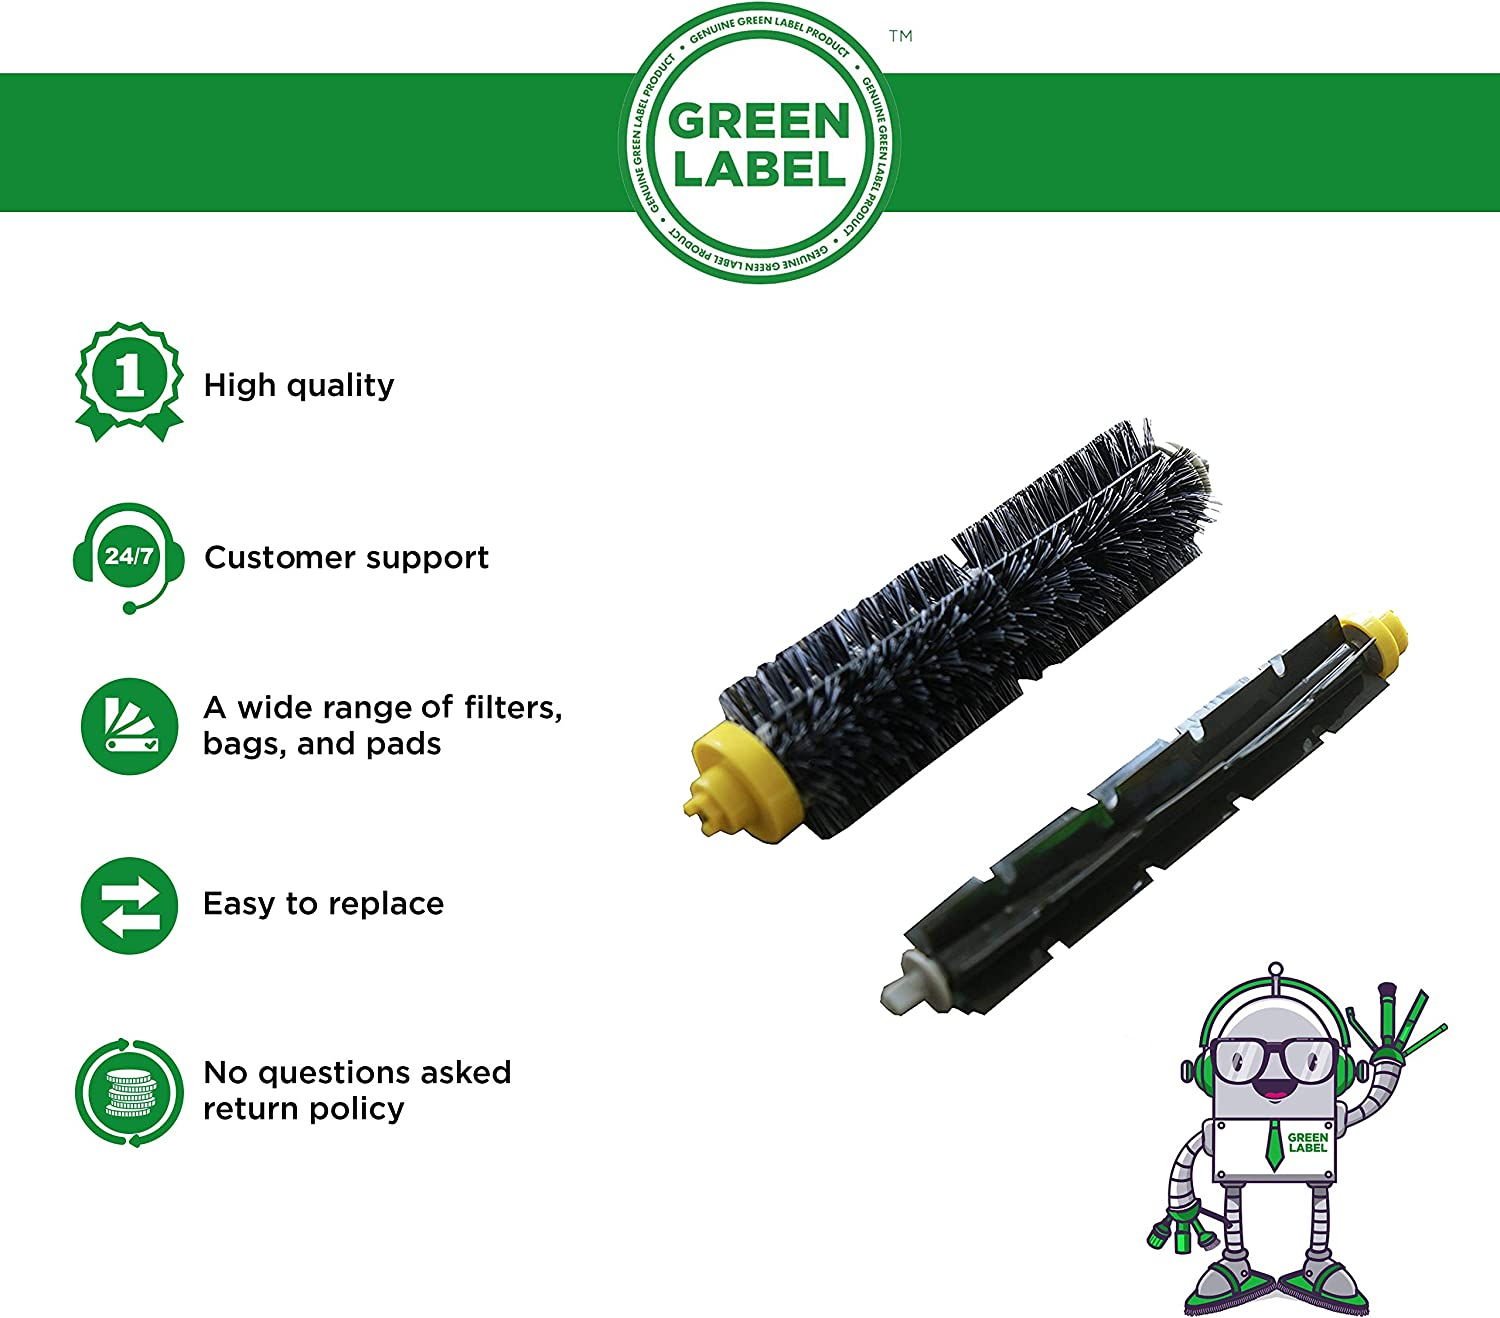 Green Label Replacement Bristle and Flexible Beater Brush Kit for iRobot Roomba 600 and 700 Series (EXCEPT 645 and 655 models)